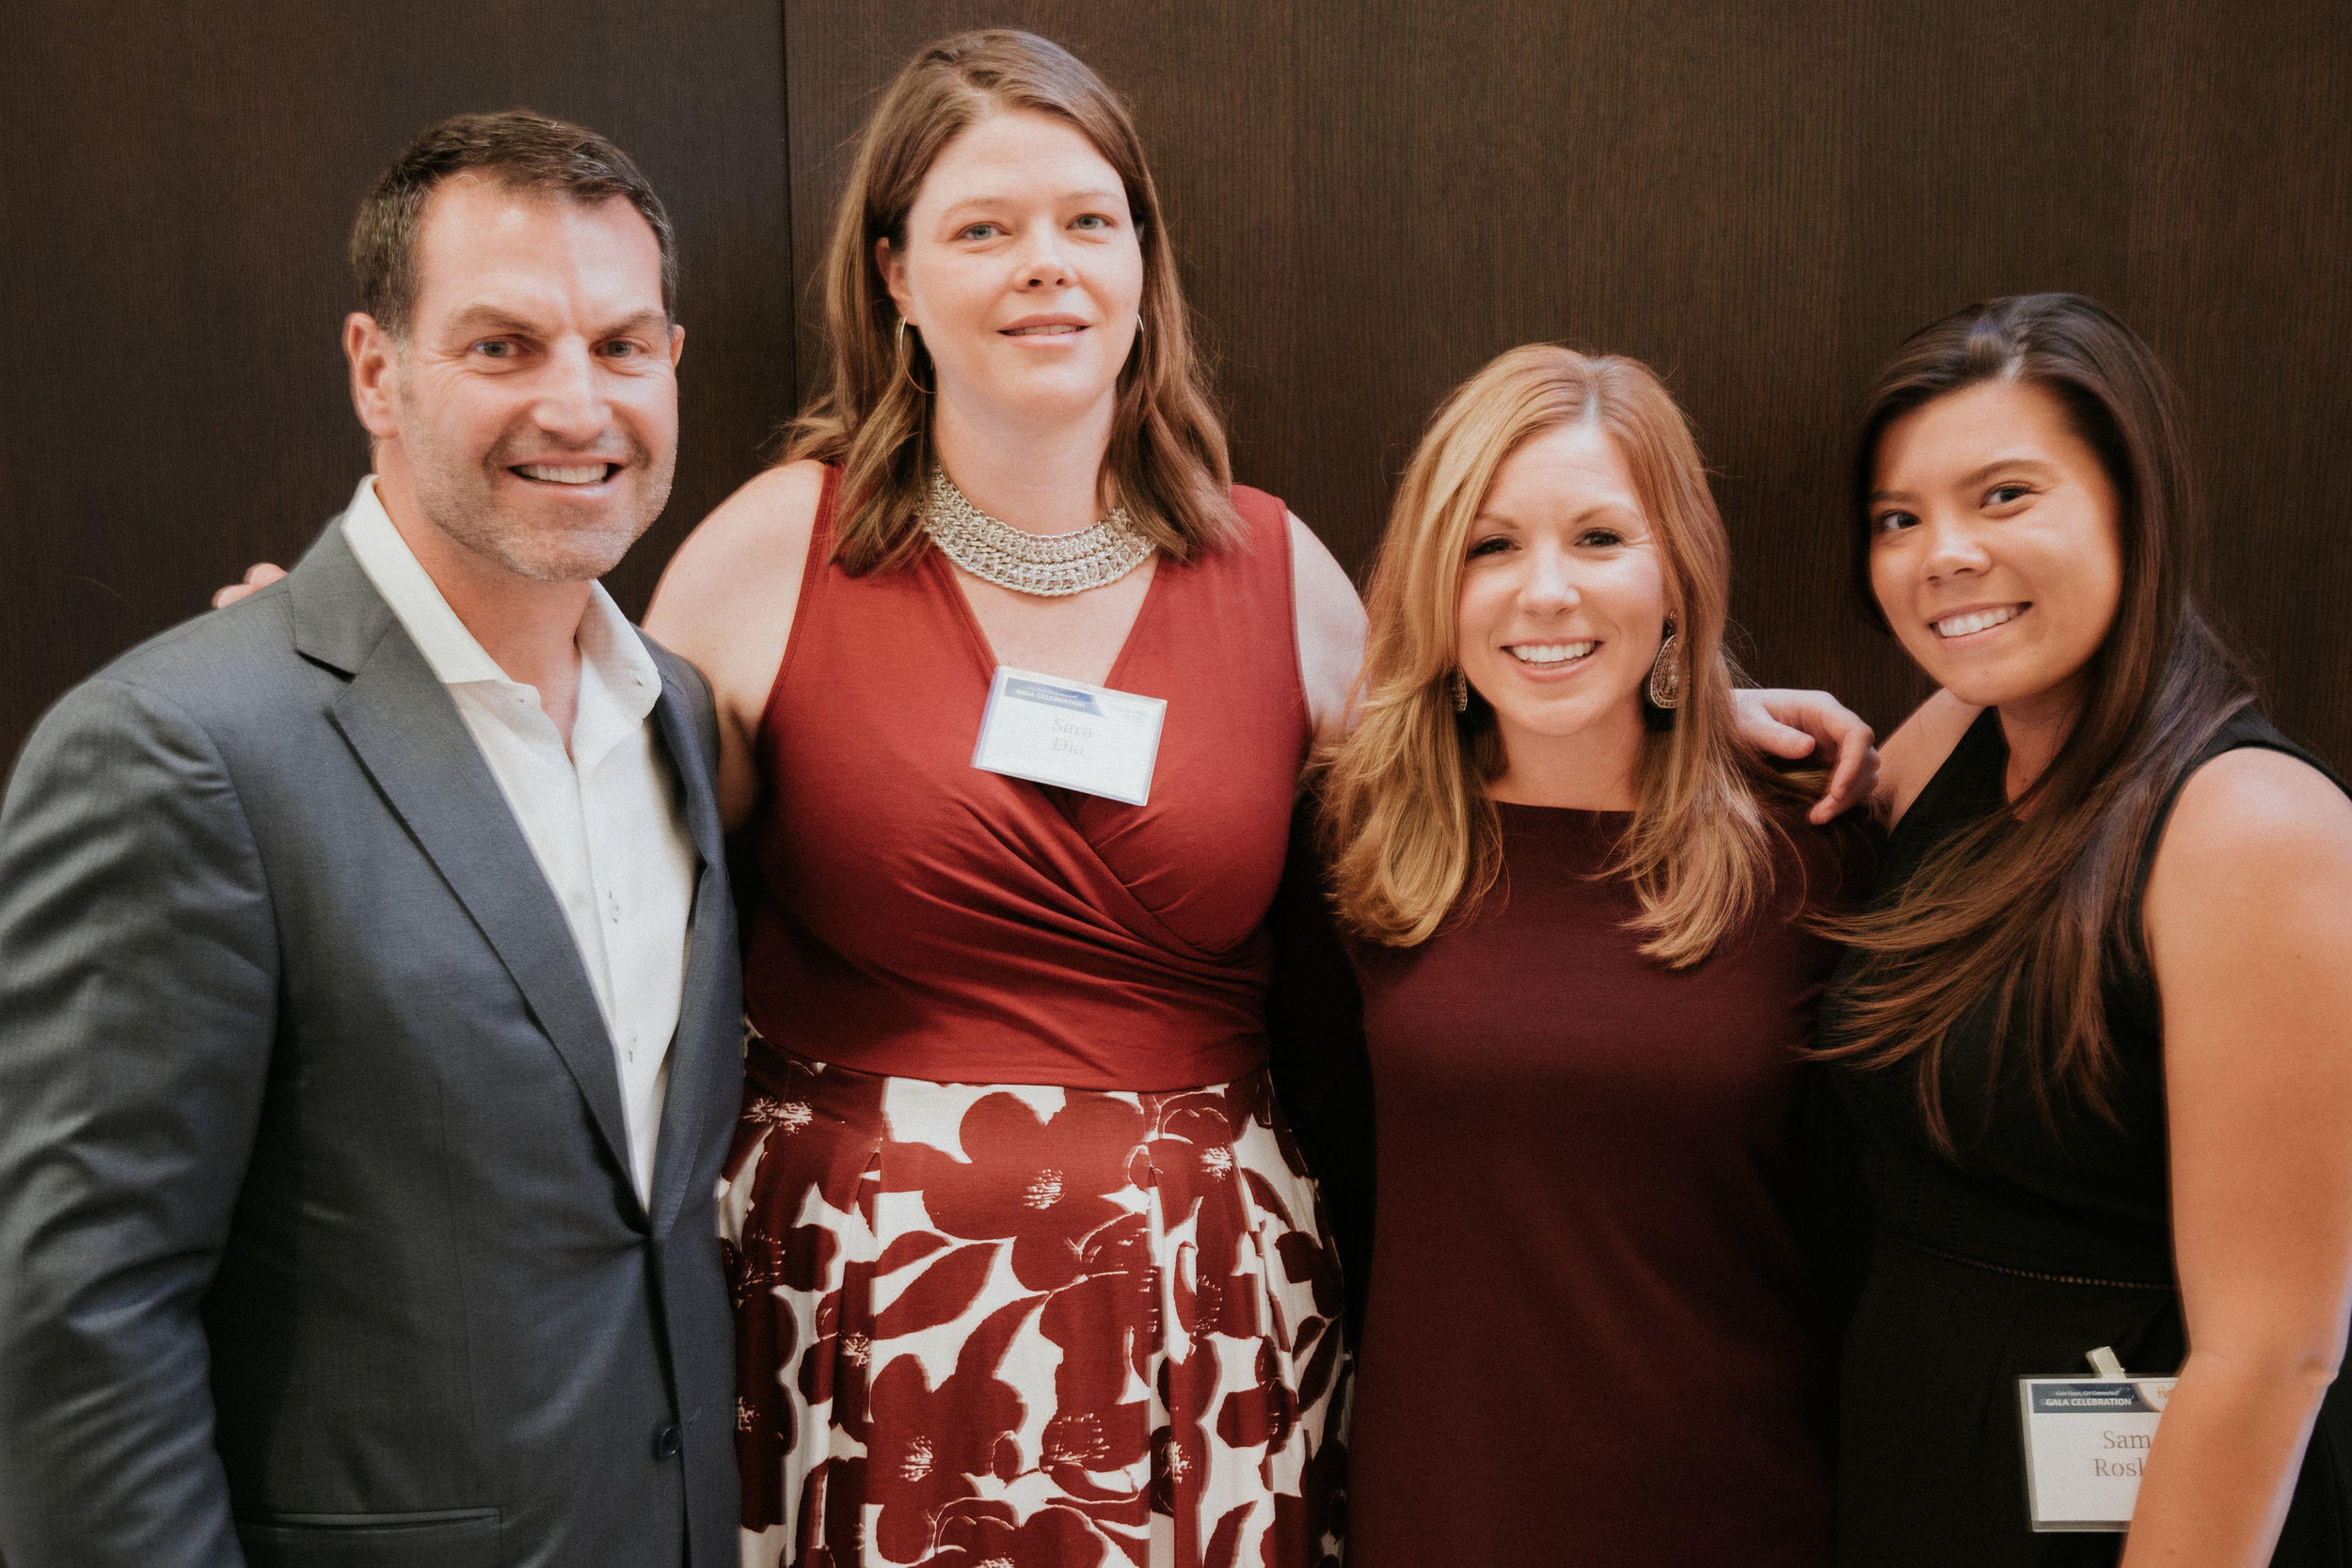 Hopecam's Founder Len Forkas with the Hopecam Team: Sara Dia, Lauren Priestas and Sam Rosko